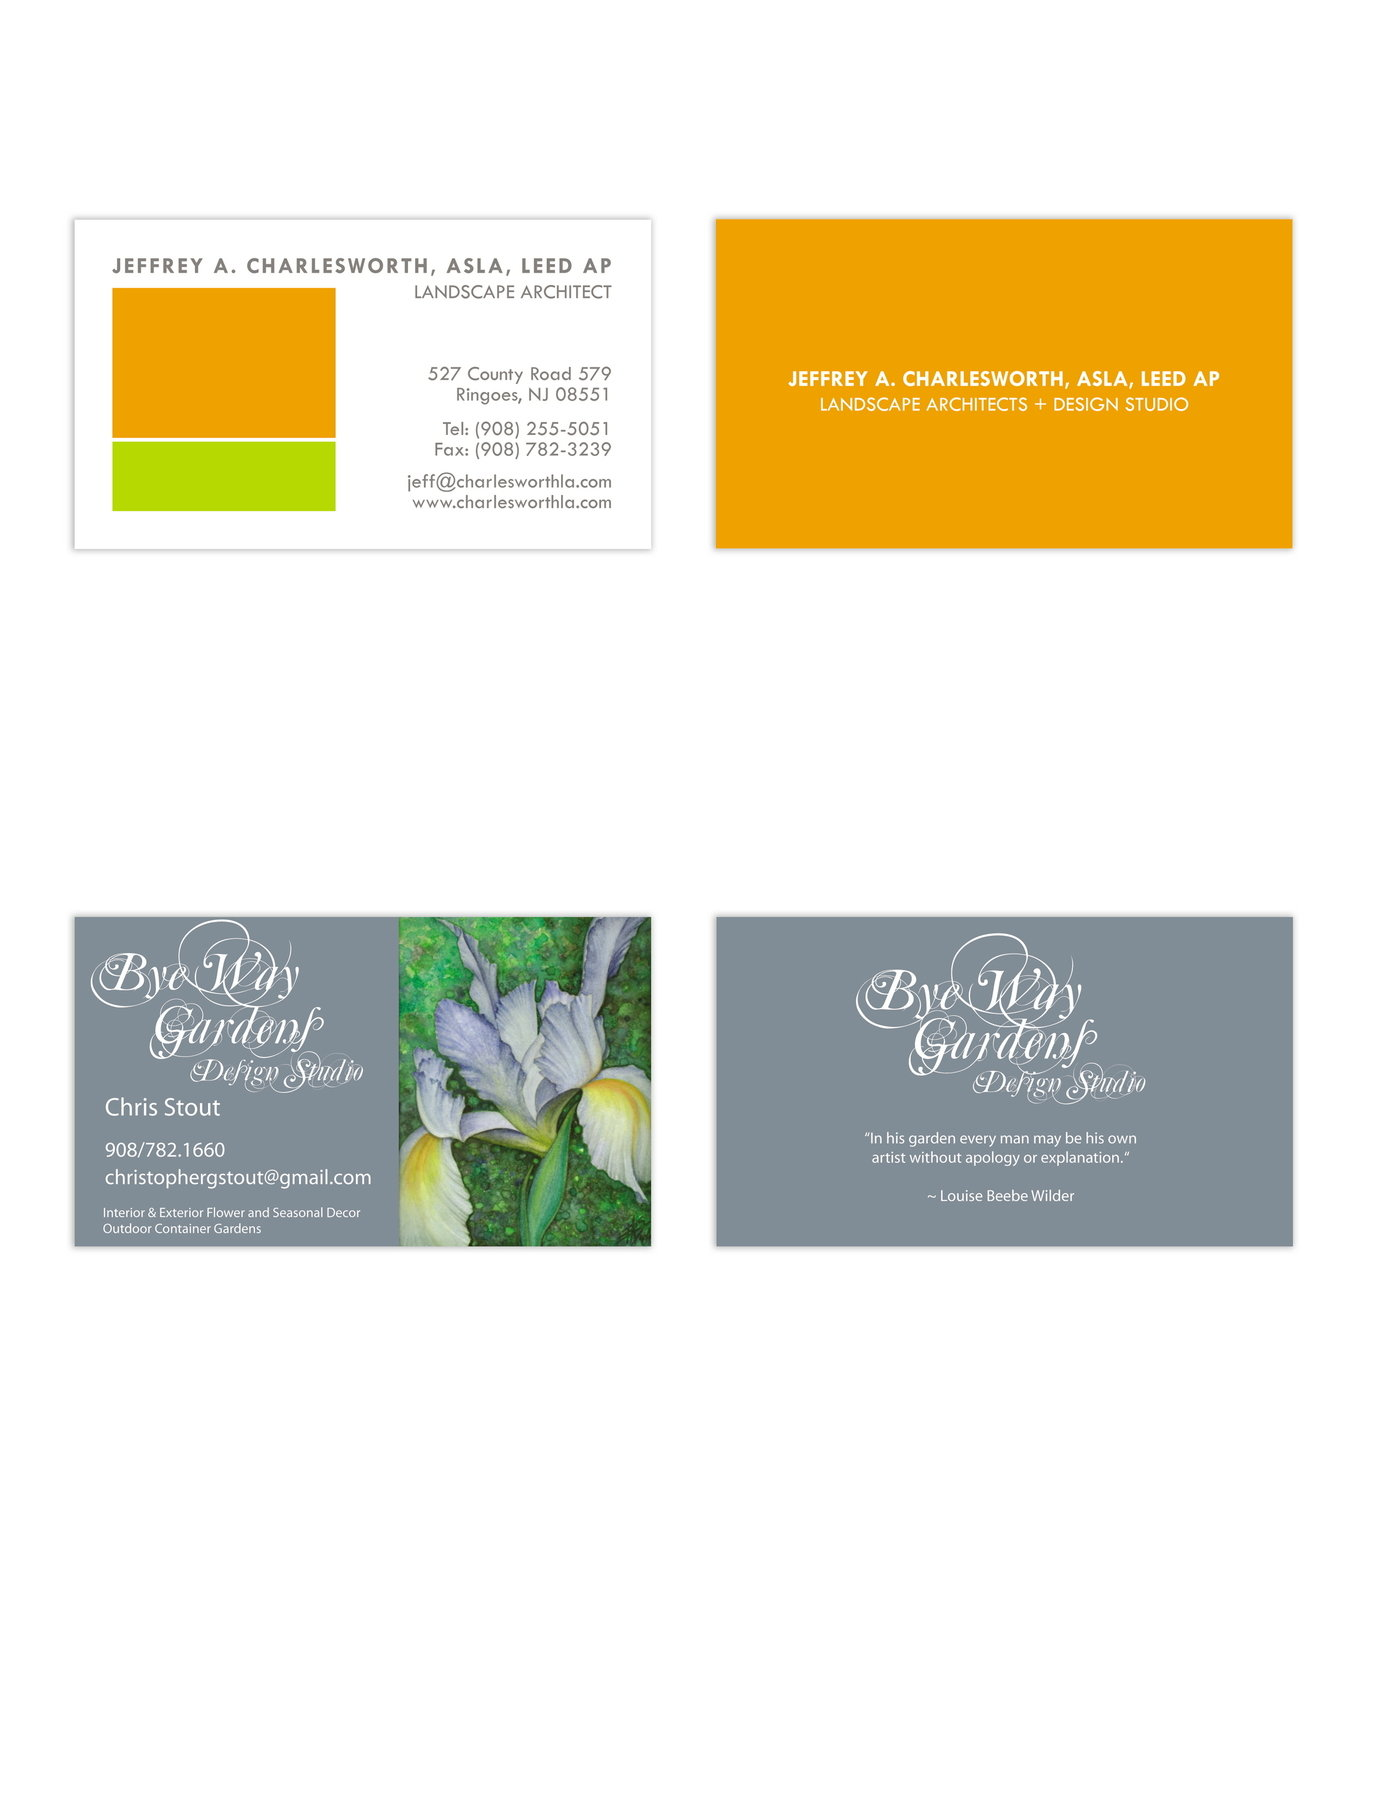 Letterhead and business cards by carla short at coroflot jeff charlesworth landscape architect and chris stout landscape design jeff charlesworth logo and business card for landscape architect in ringoes nj colourmoves